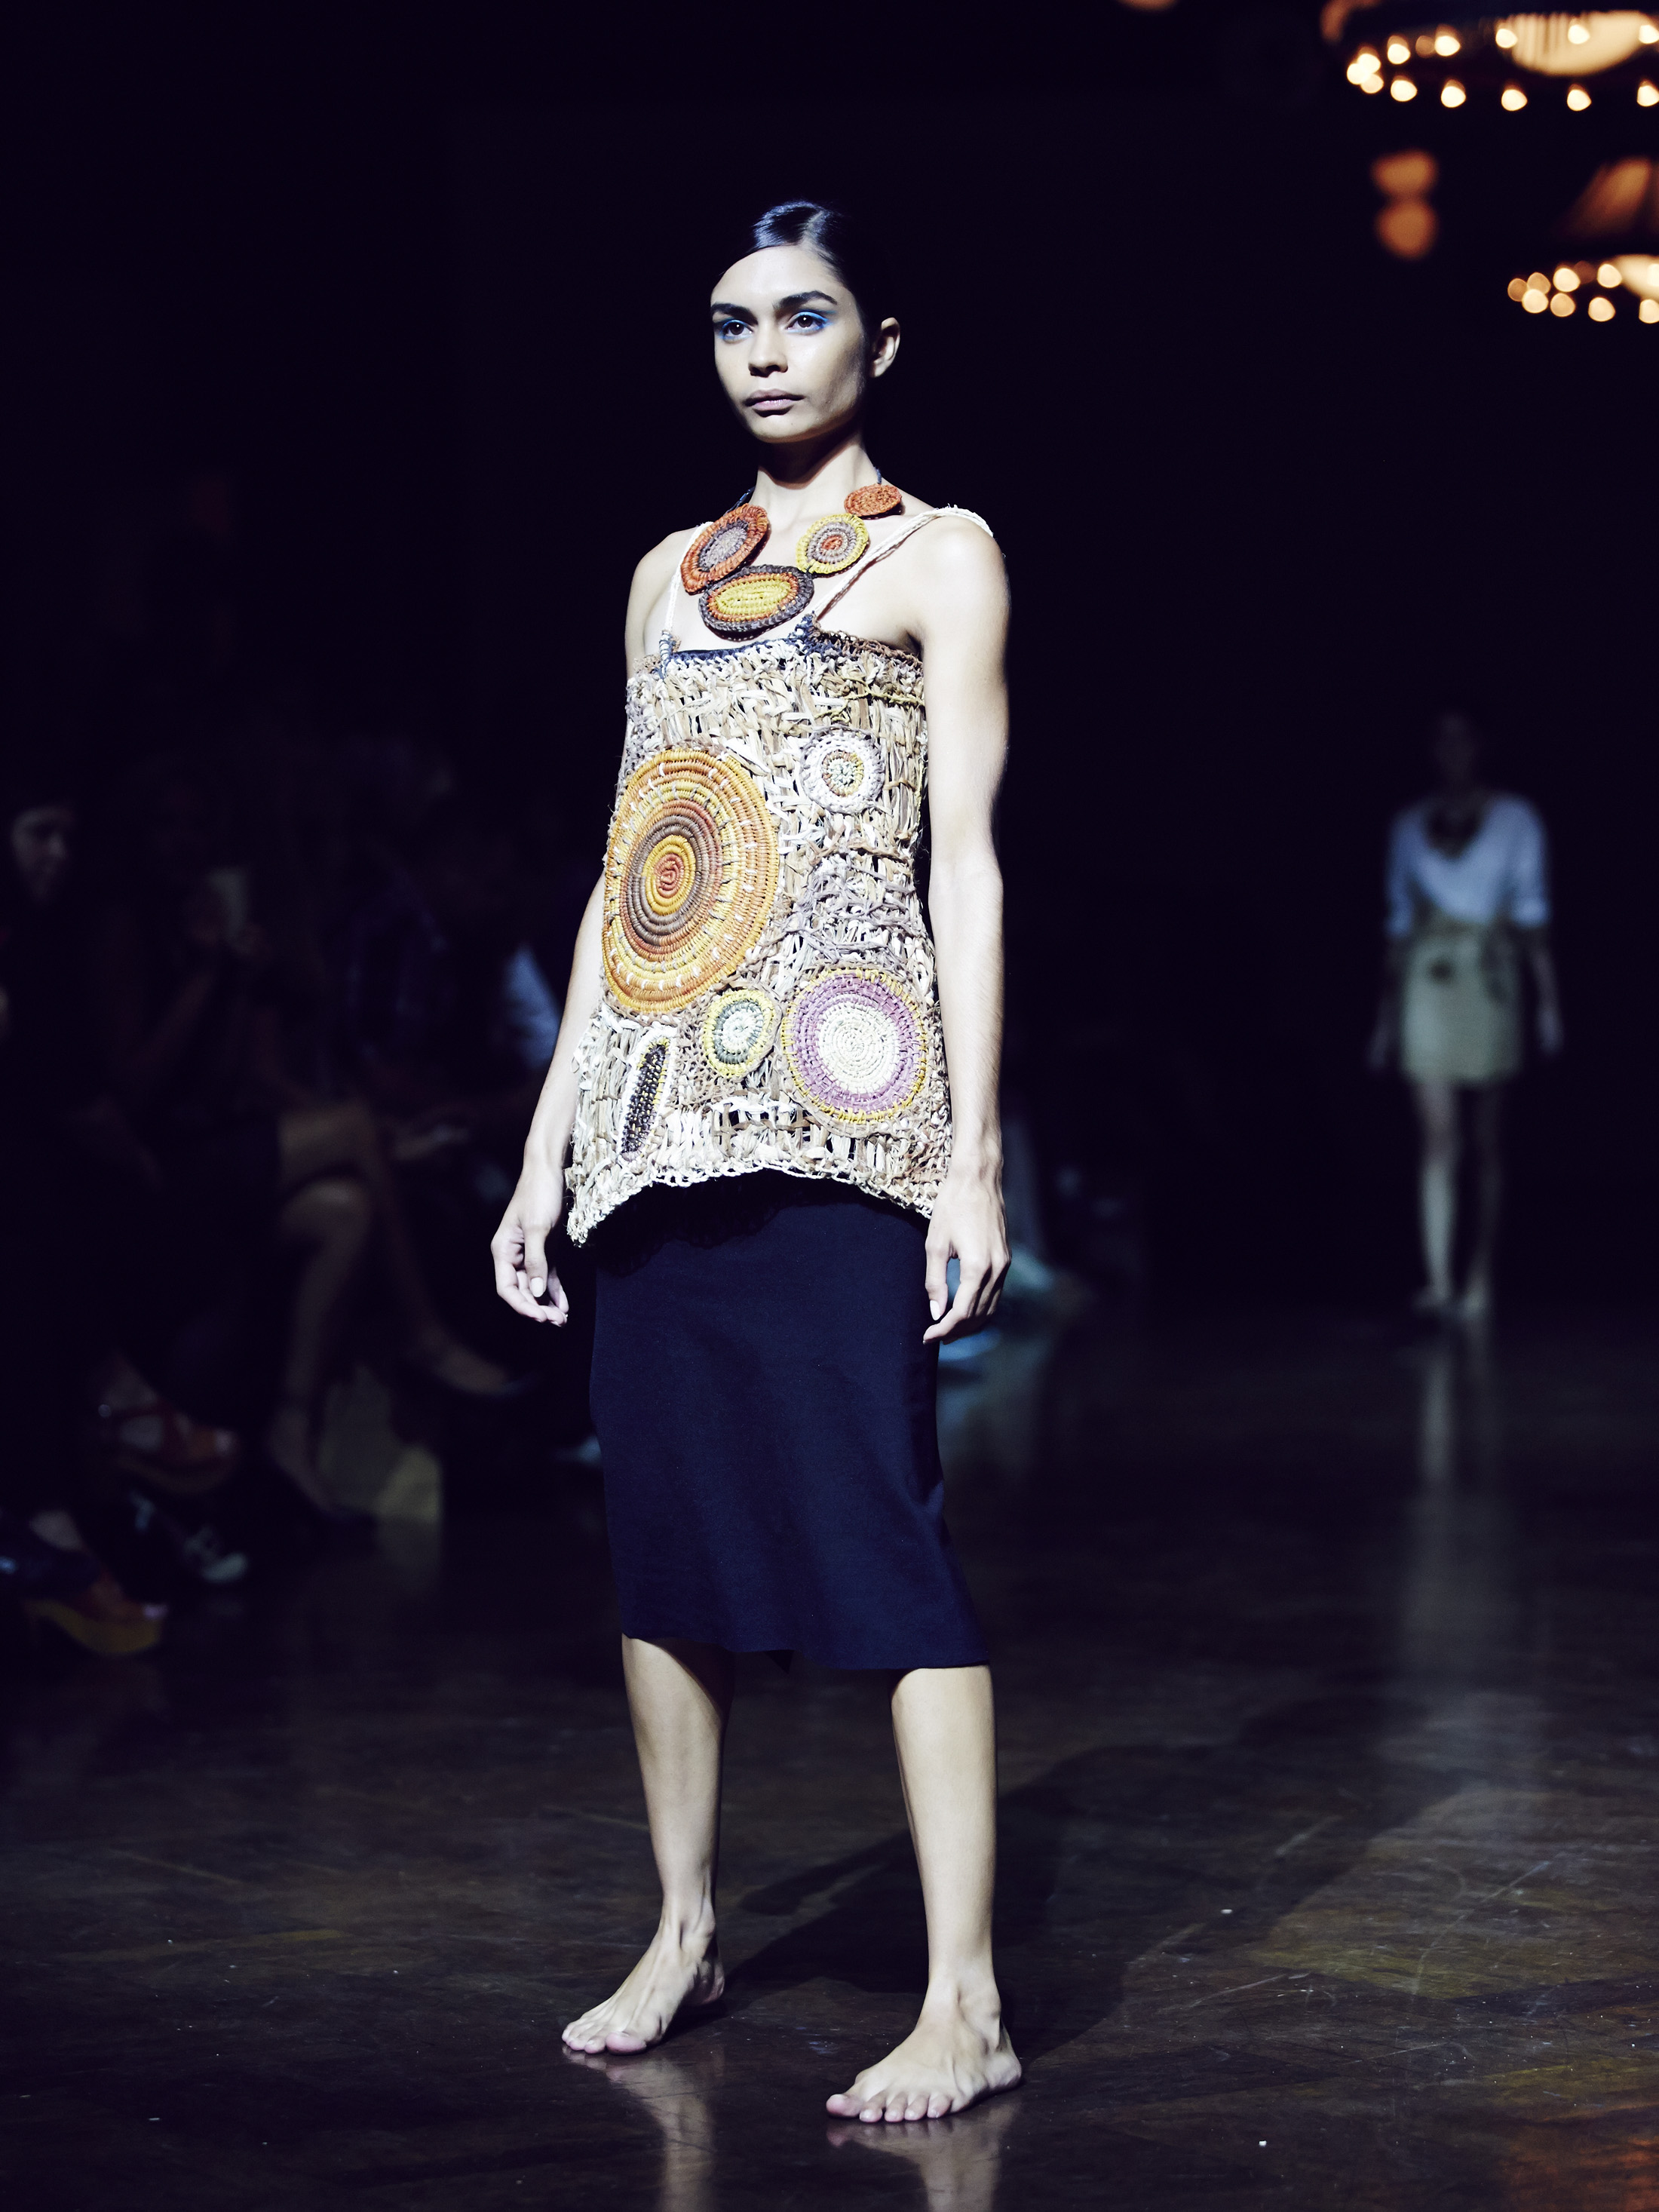 Mavis Ganambarr's Pandanas Tunic and Necklace on the runway at AIFW 2014. Photo Hamish Gregory.